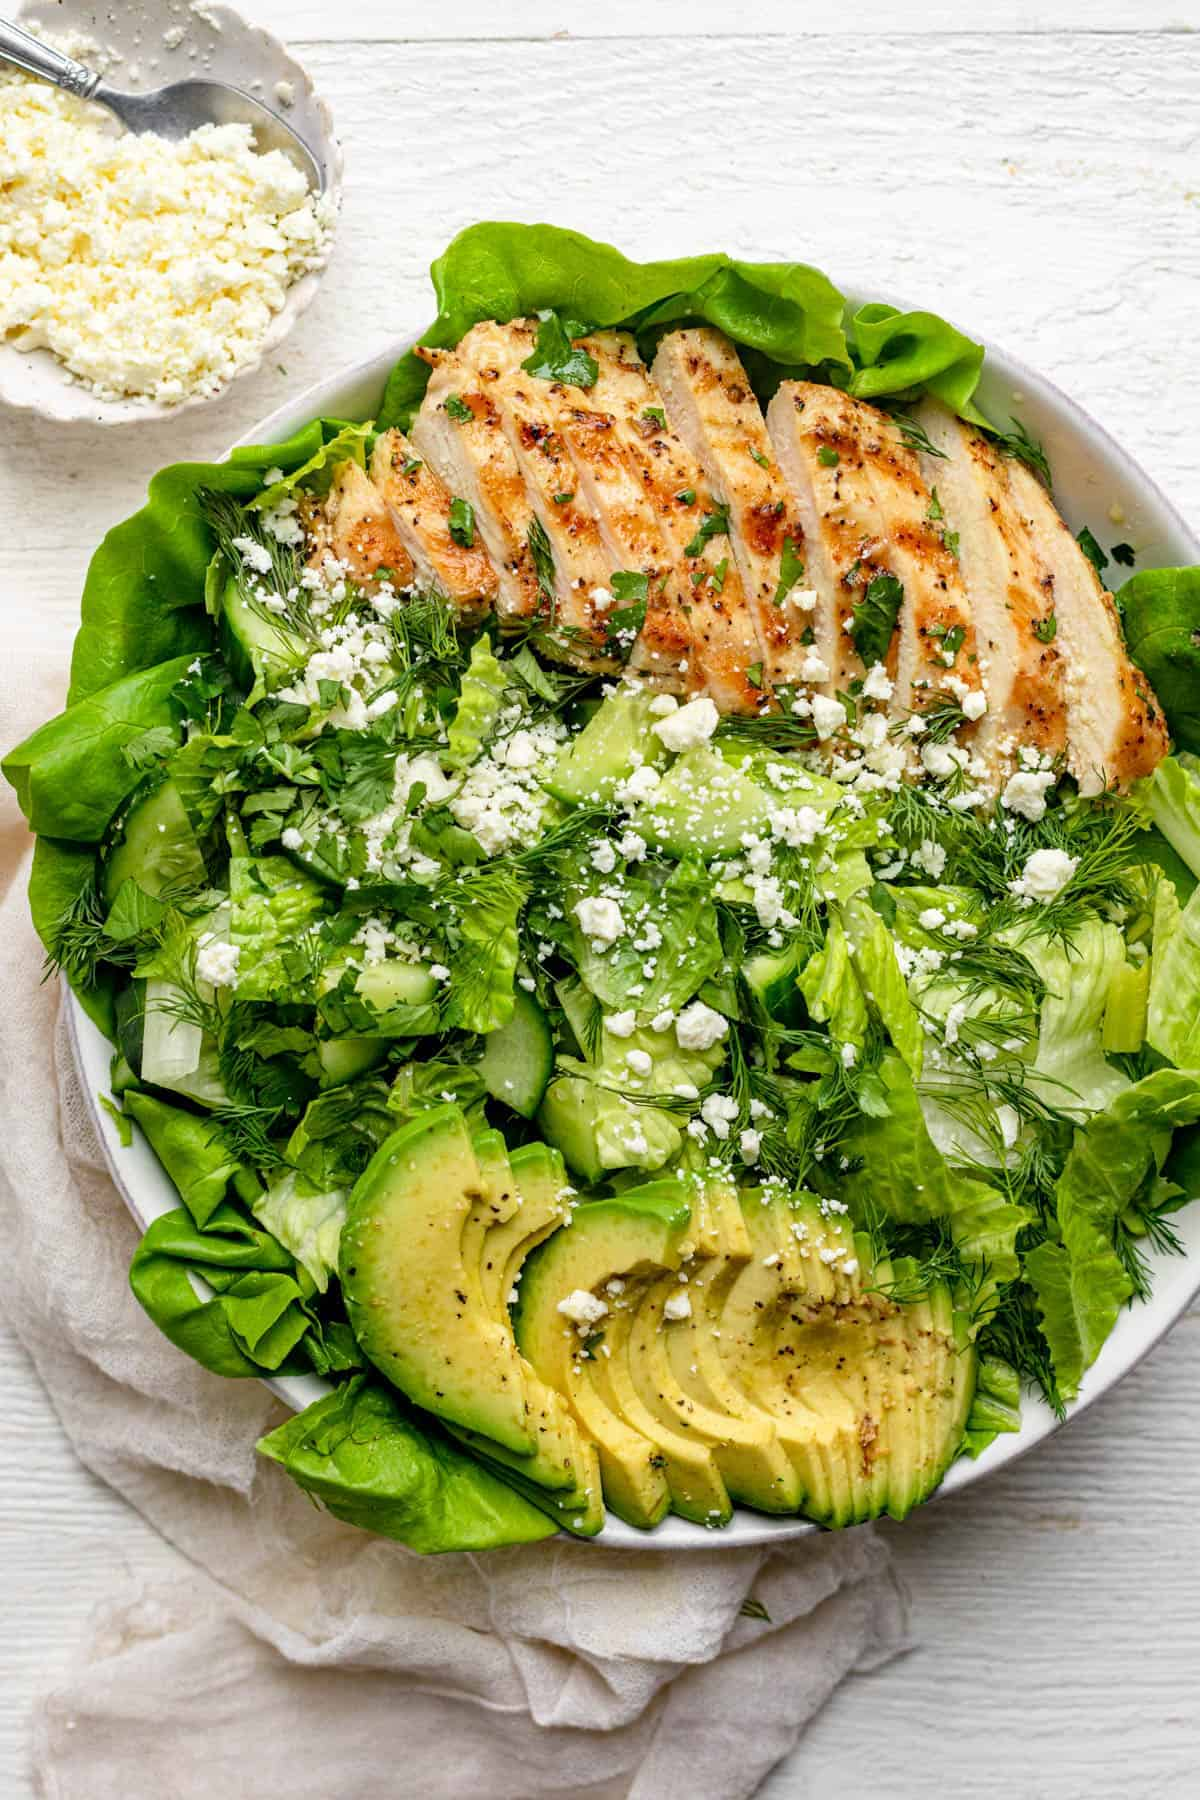 Large bowl of the green goddess salad topped with grilled chicken and avocado